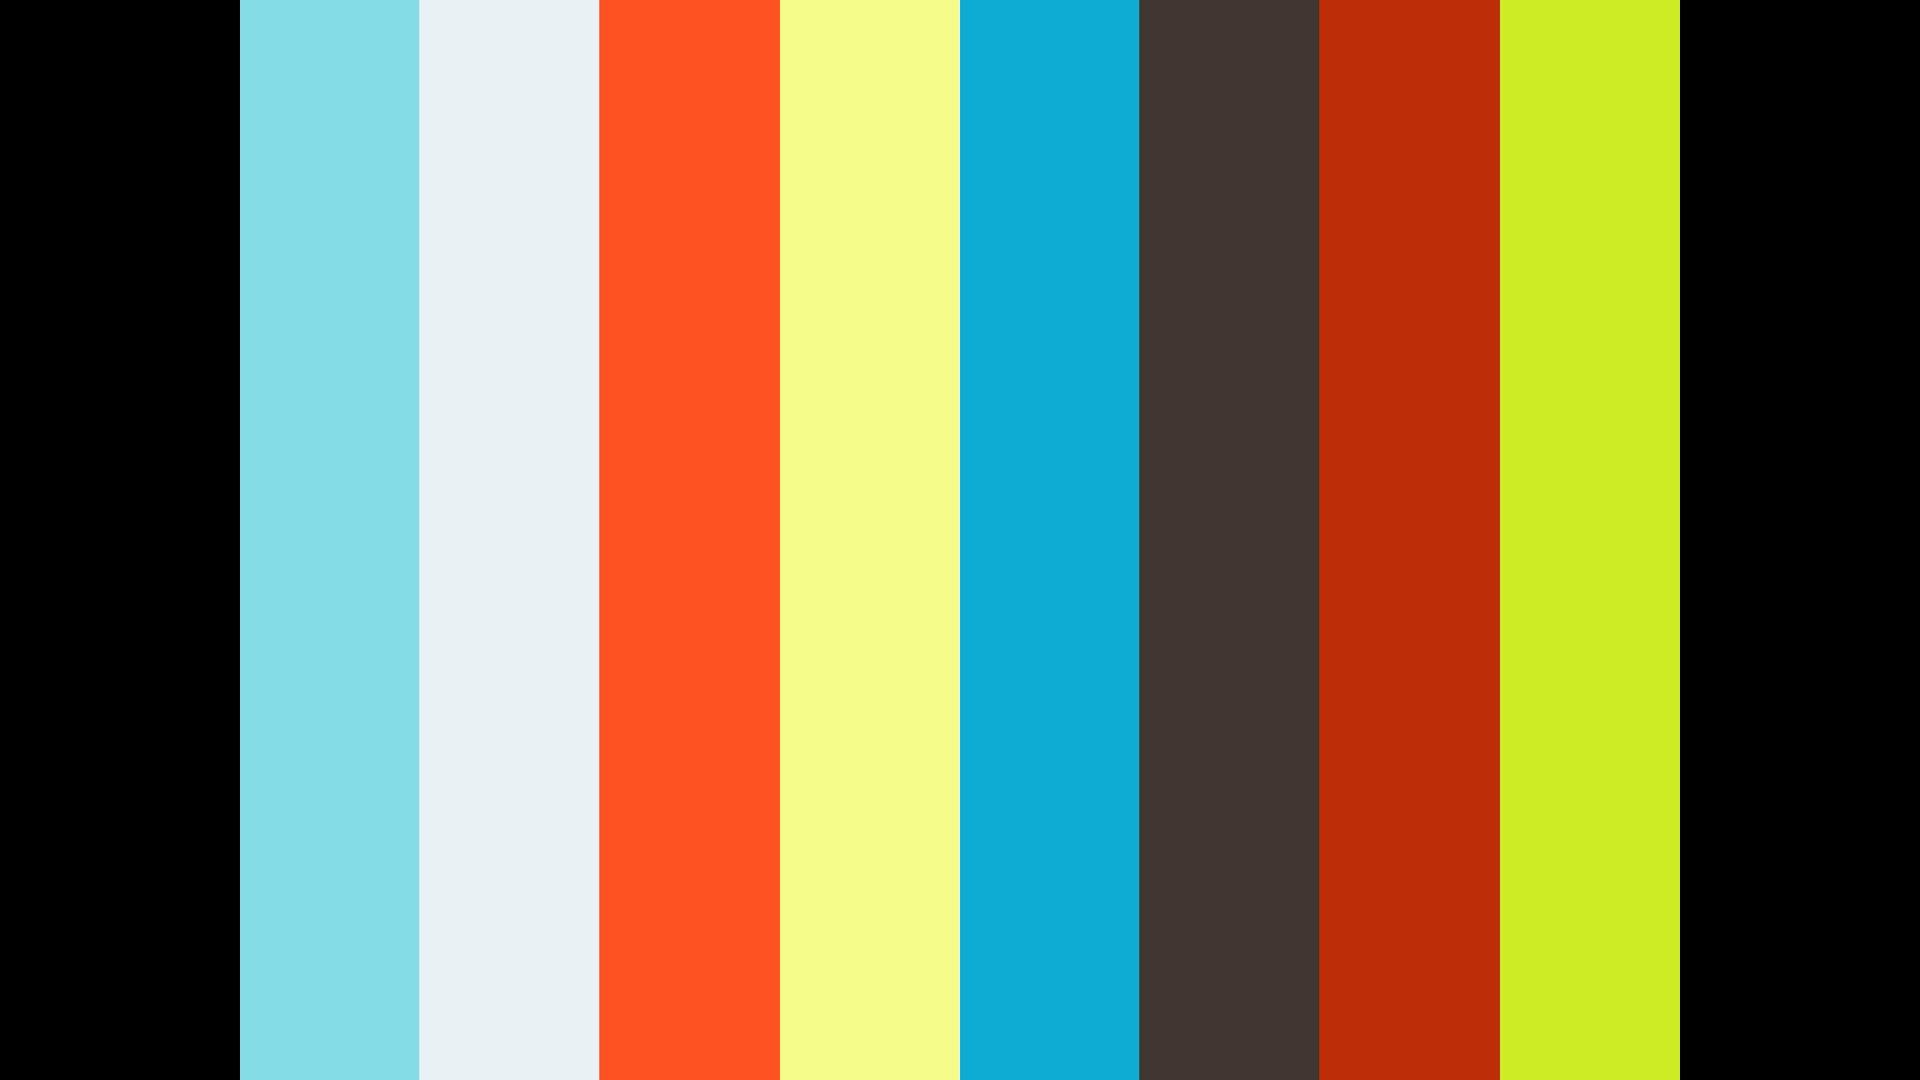 Our Scottish Holiday - Day 4 - Birds, Boats, Bunnies & a wee Blast from the Past